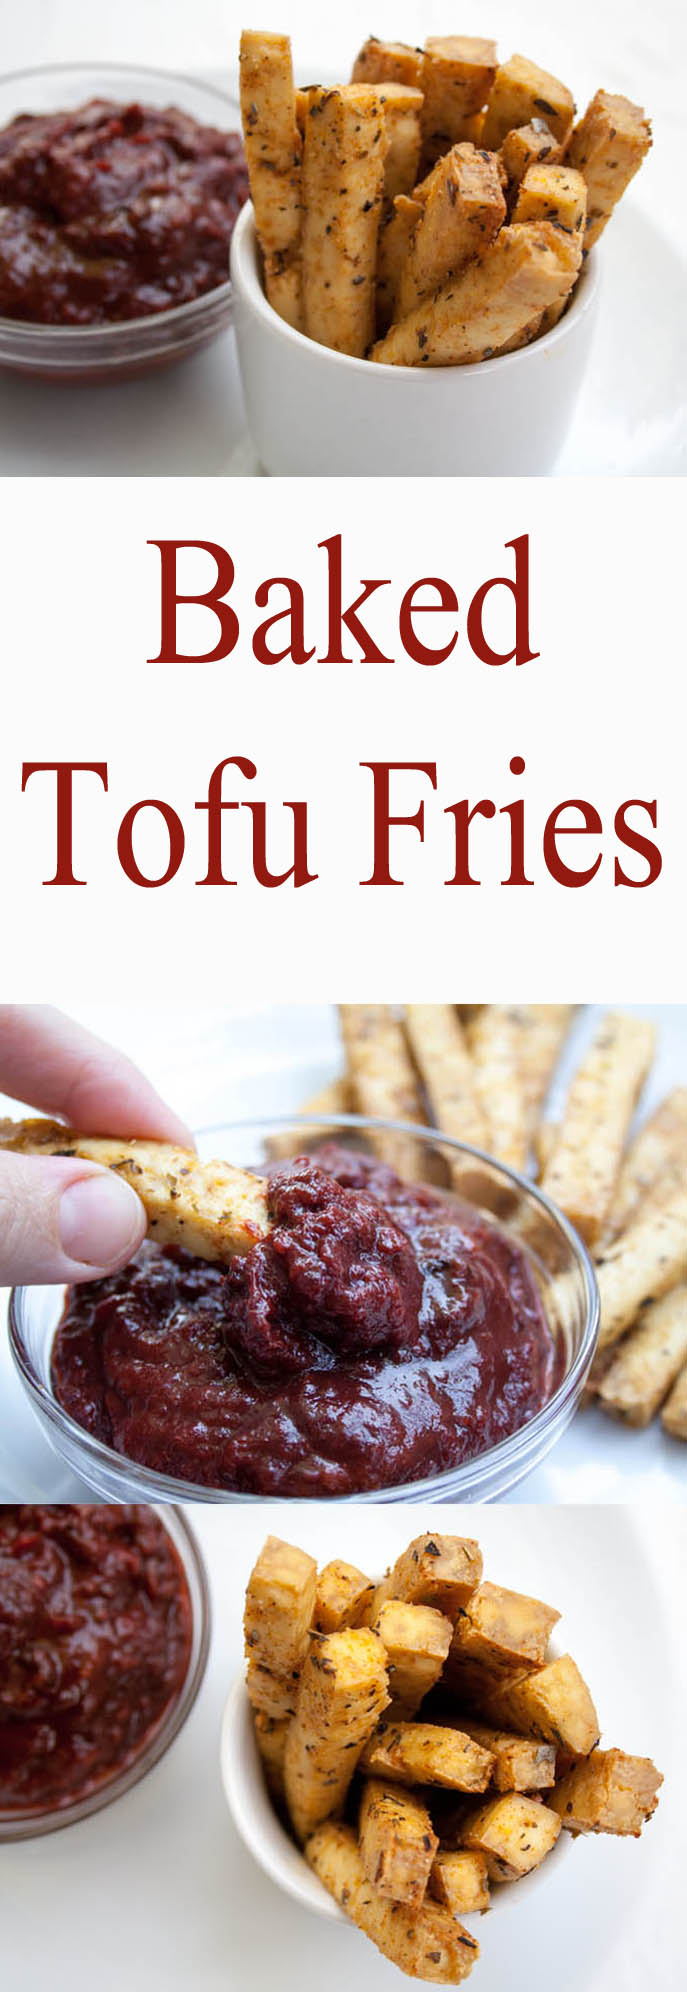 Baked Tofu Fries collage photo with two photos and text in between.